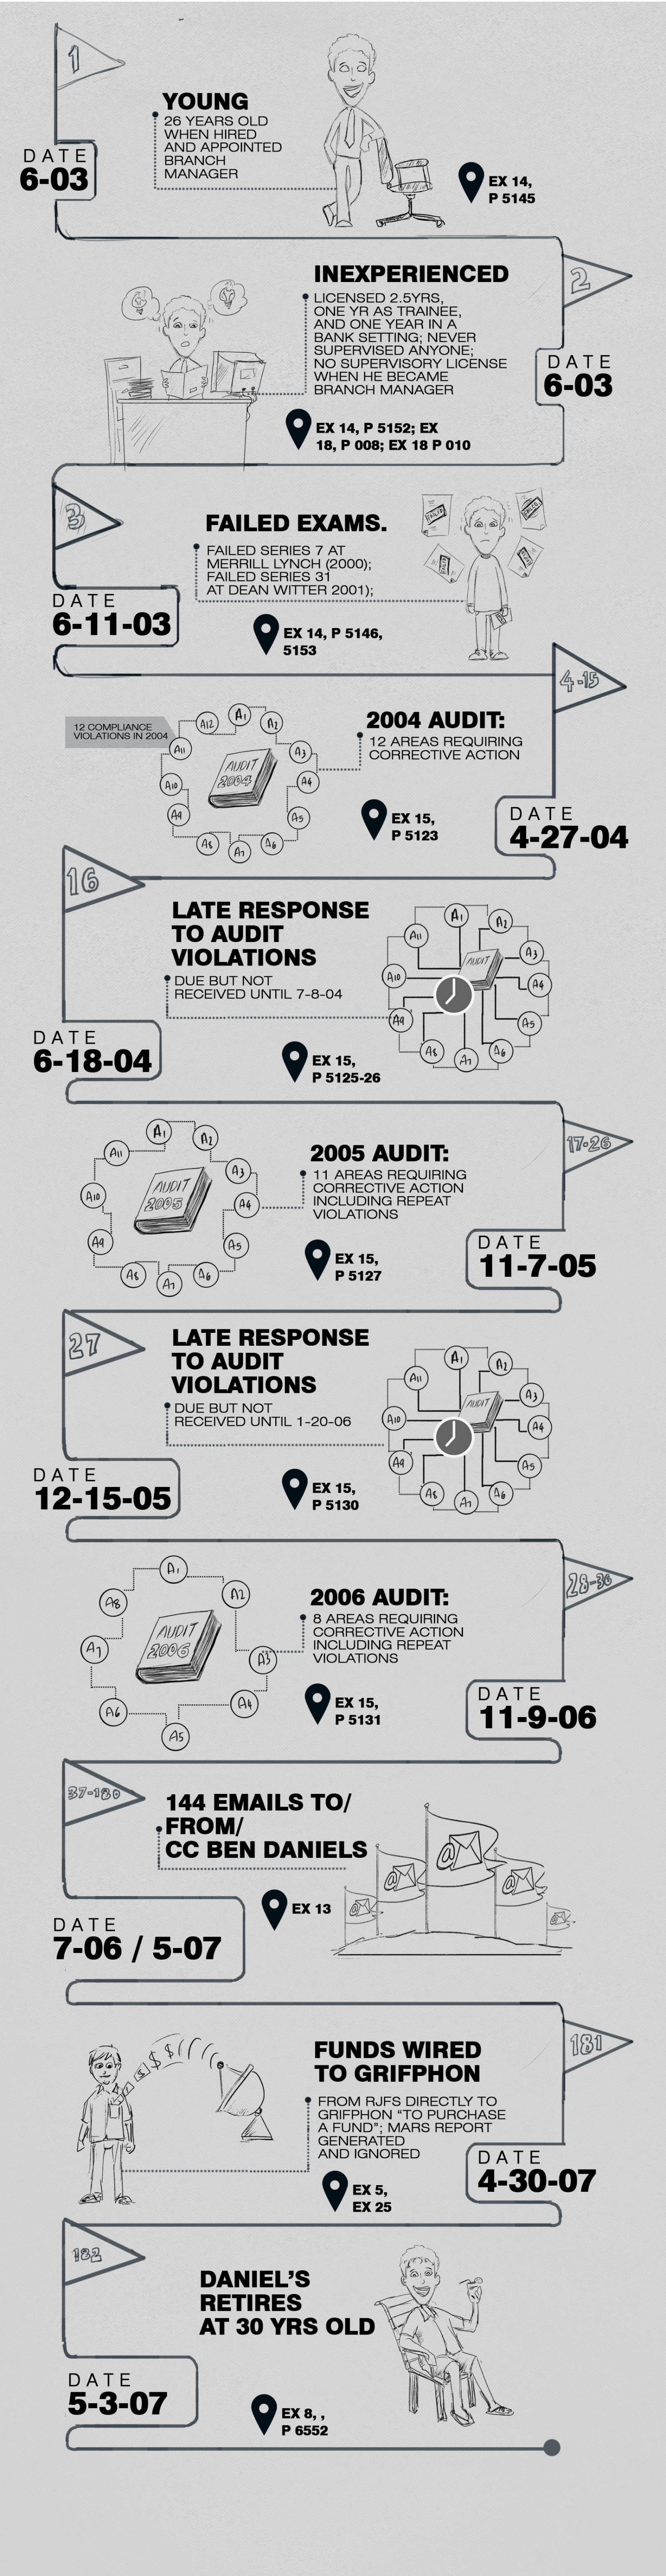 Life of Young Successful   Infographic